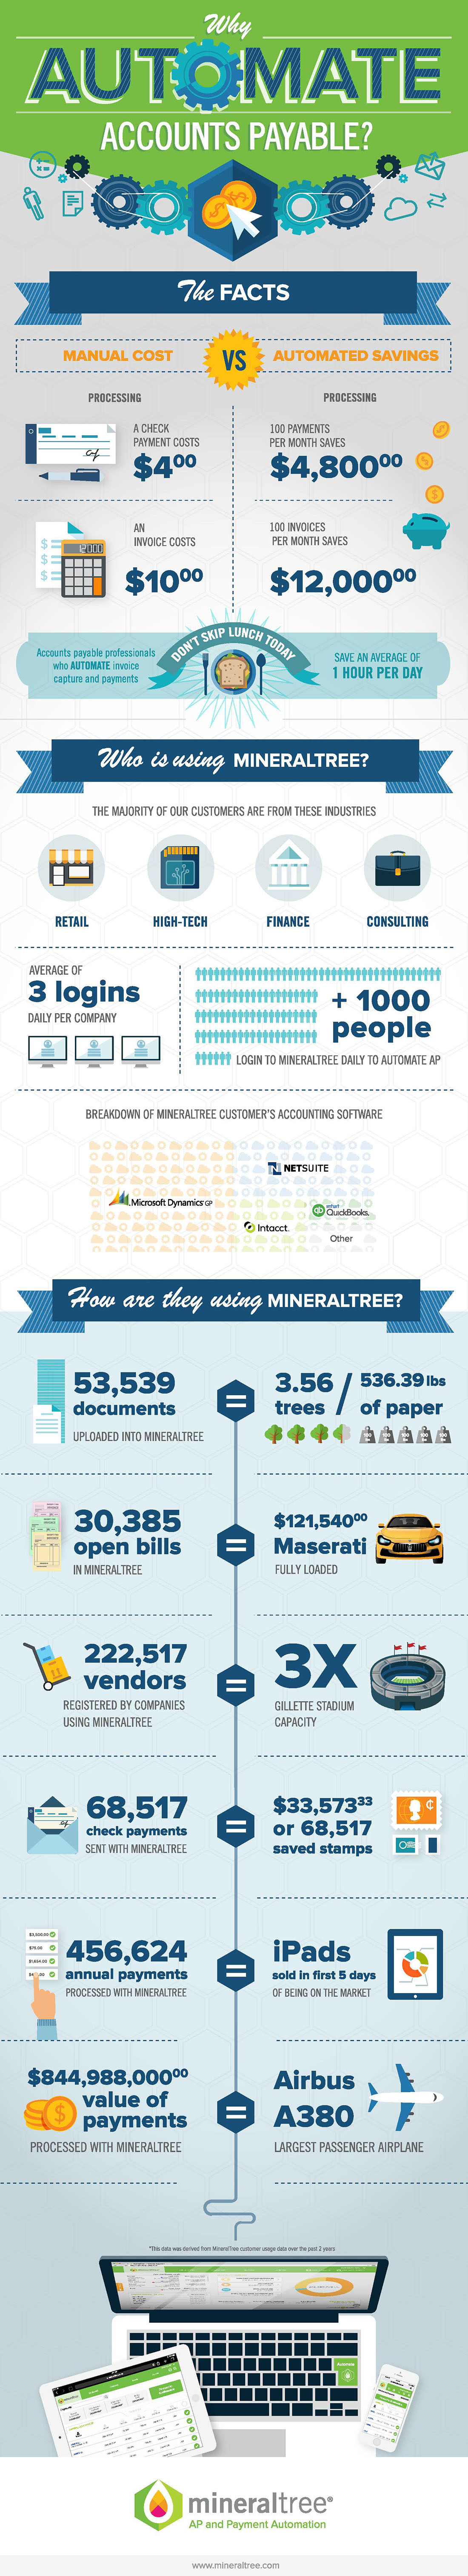 Why Automate Accounts Payable? Infographic